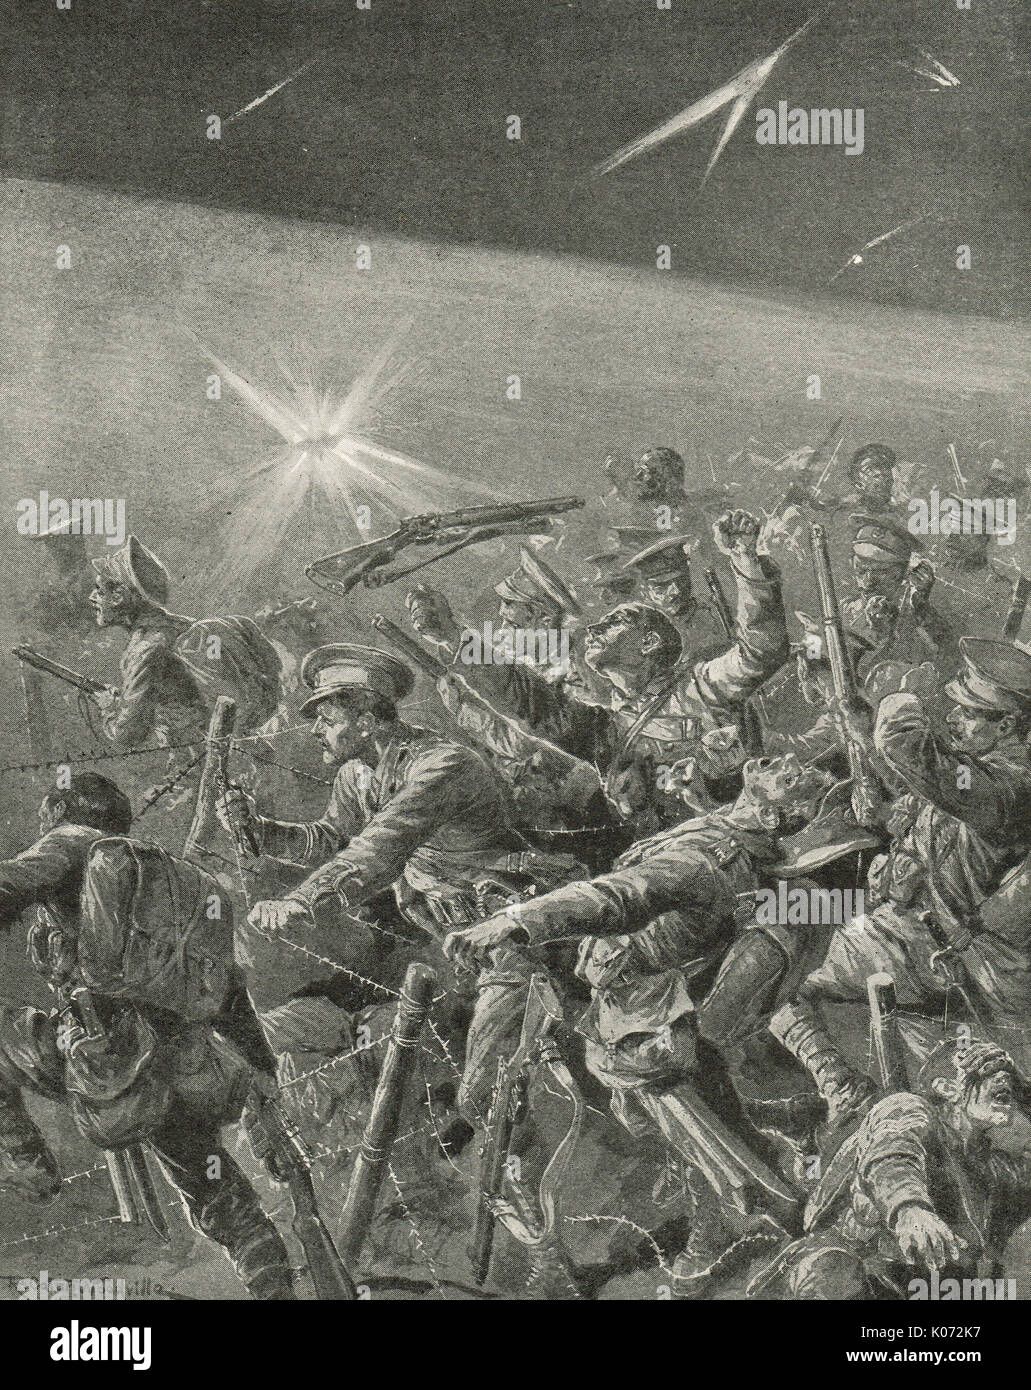 World War 1 Barbed Wire Stock Photos & World War 1 Barbed Wire Stock ...